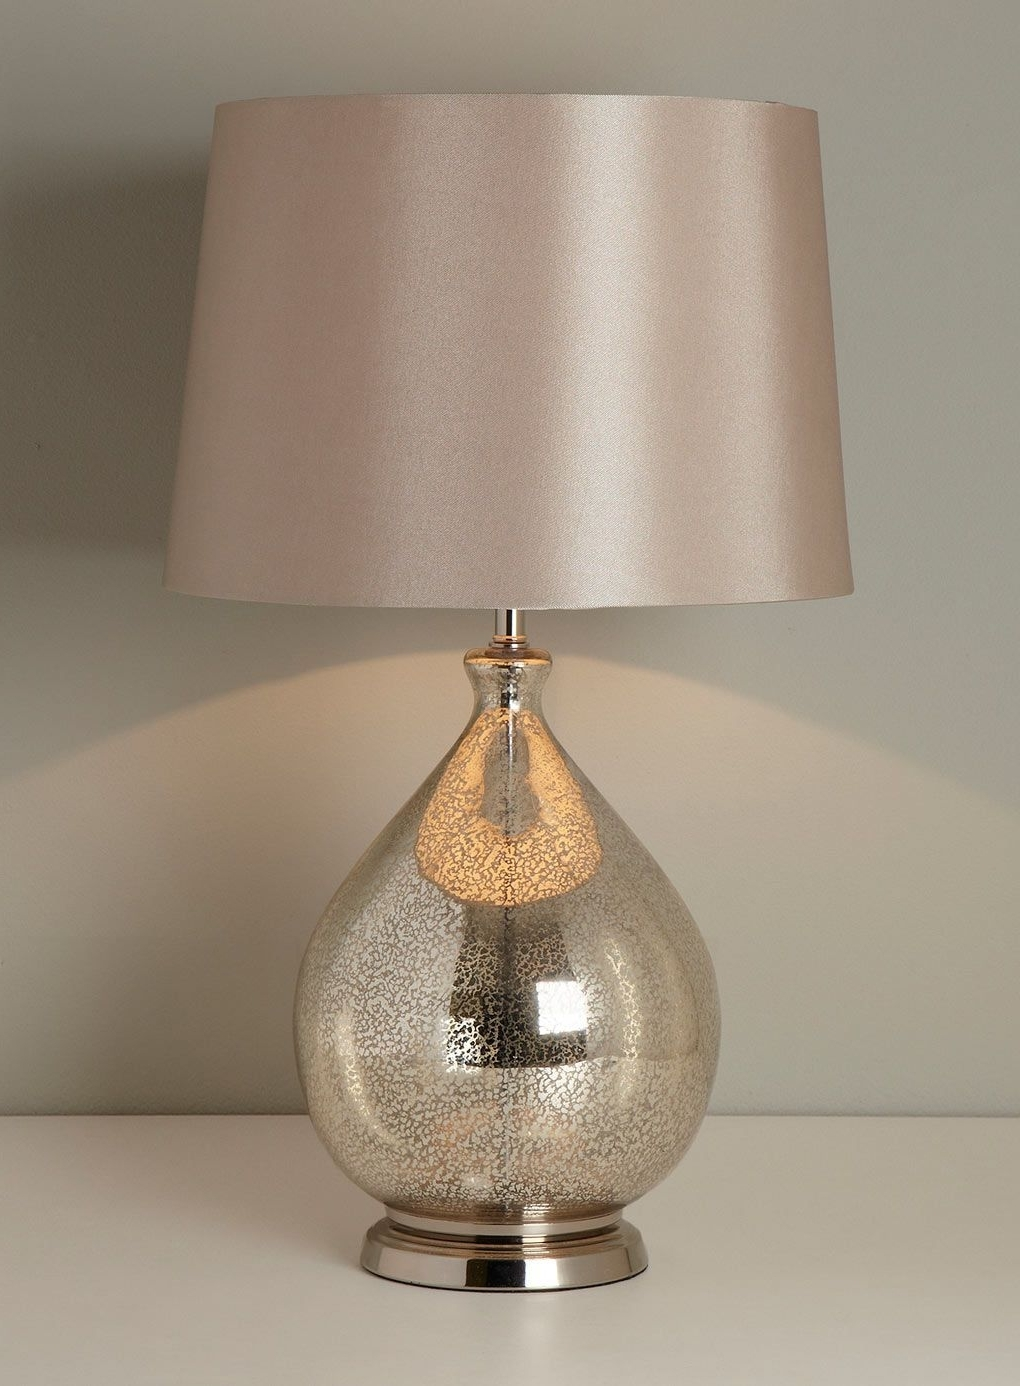 Widely used battery operated living room table lamps with battery operated living room table lamps modern